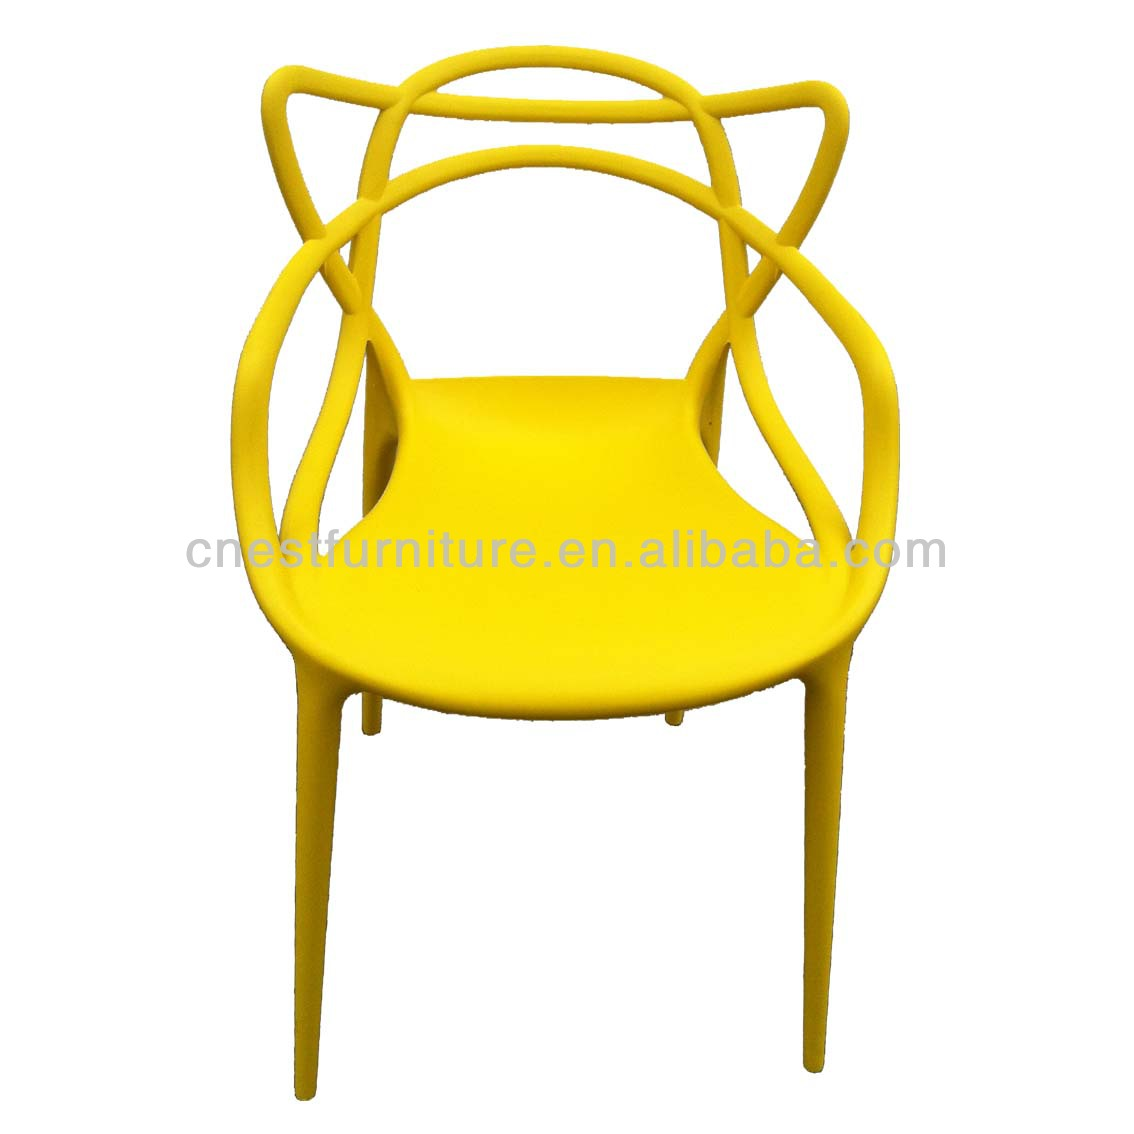 Backless sofa canada picture on yellow dining chairs with backless